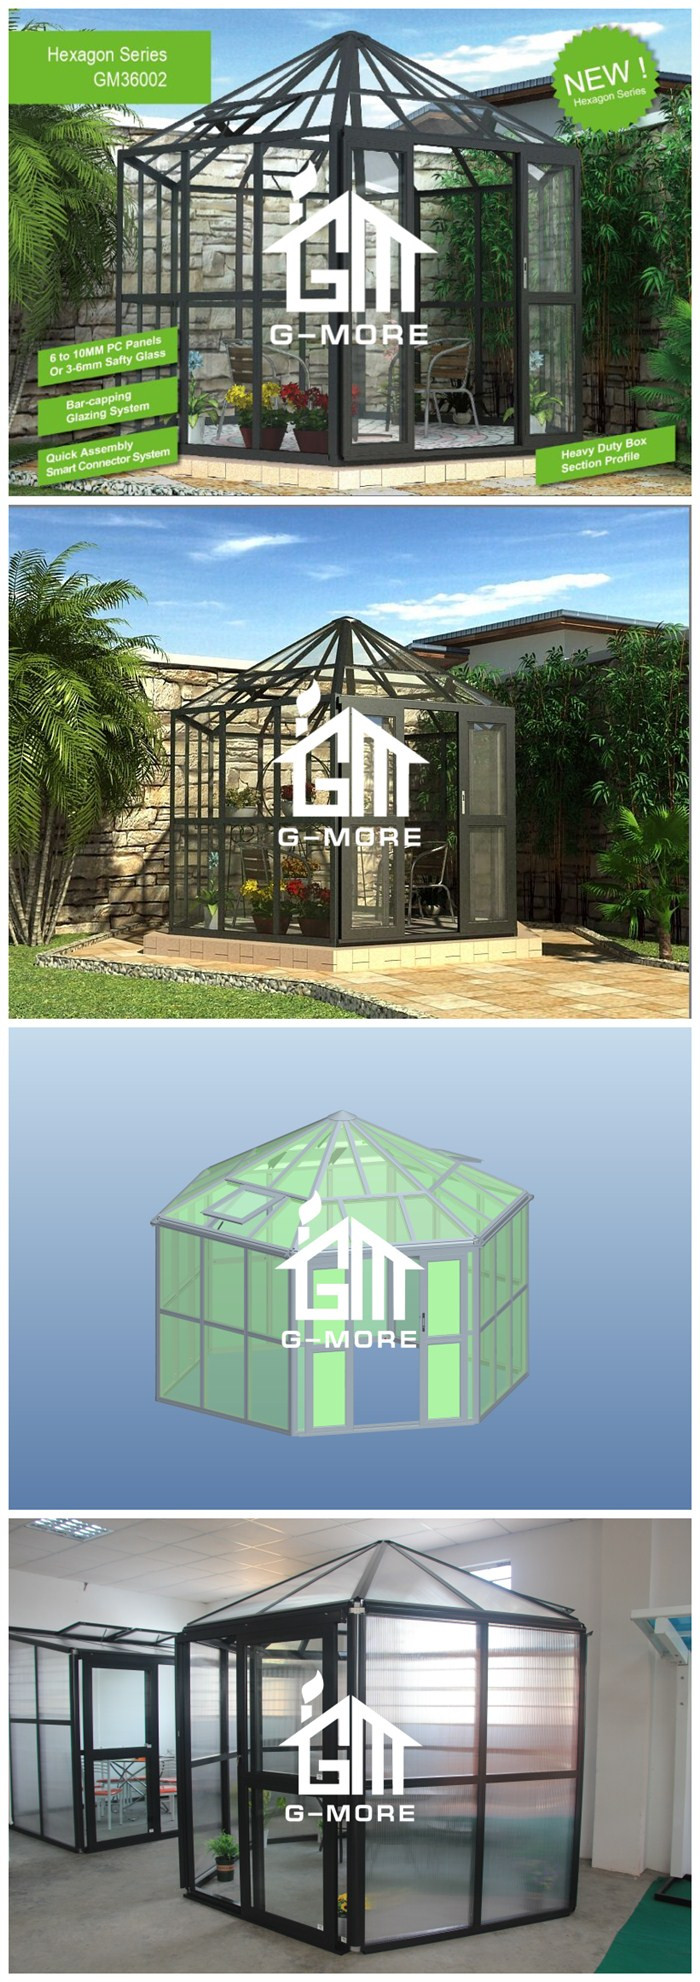 G-MORE Latest New Style Luxury Hexagonal Glass house (GM36001)